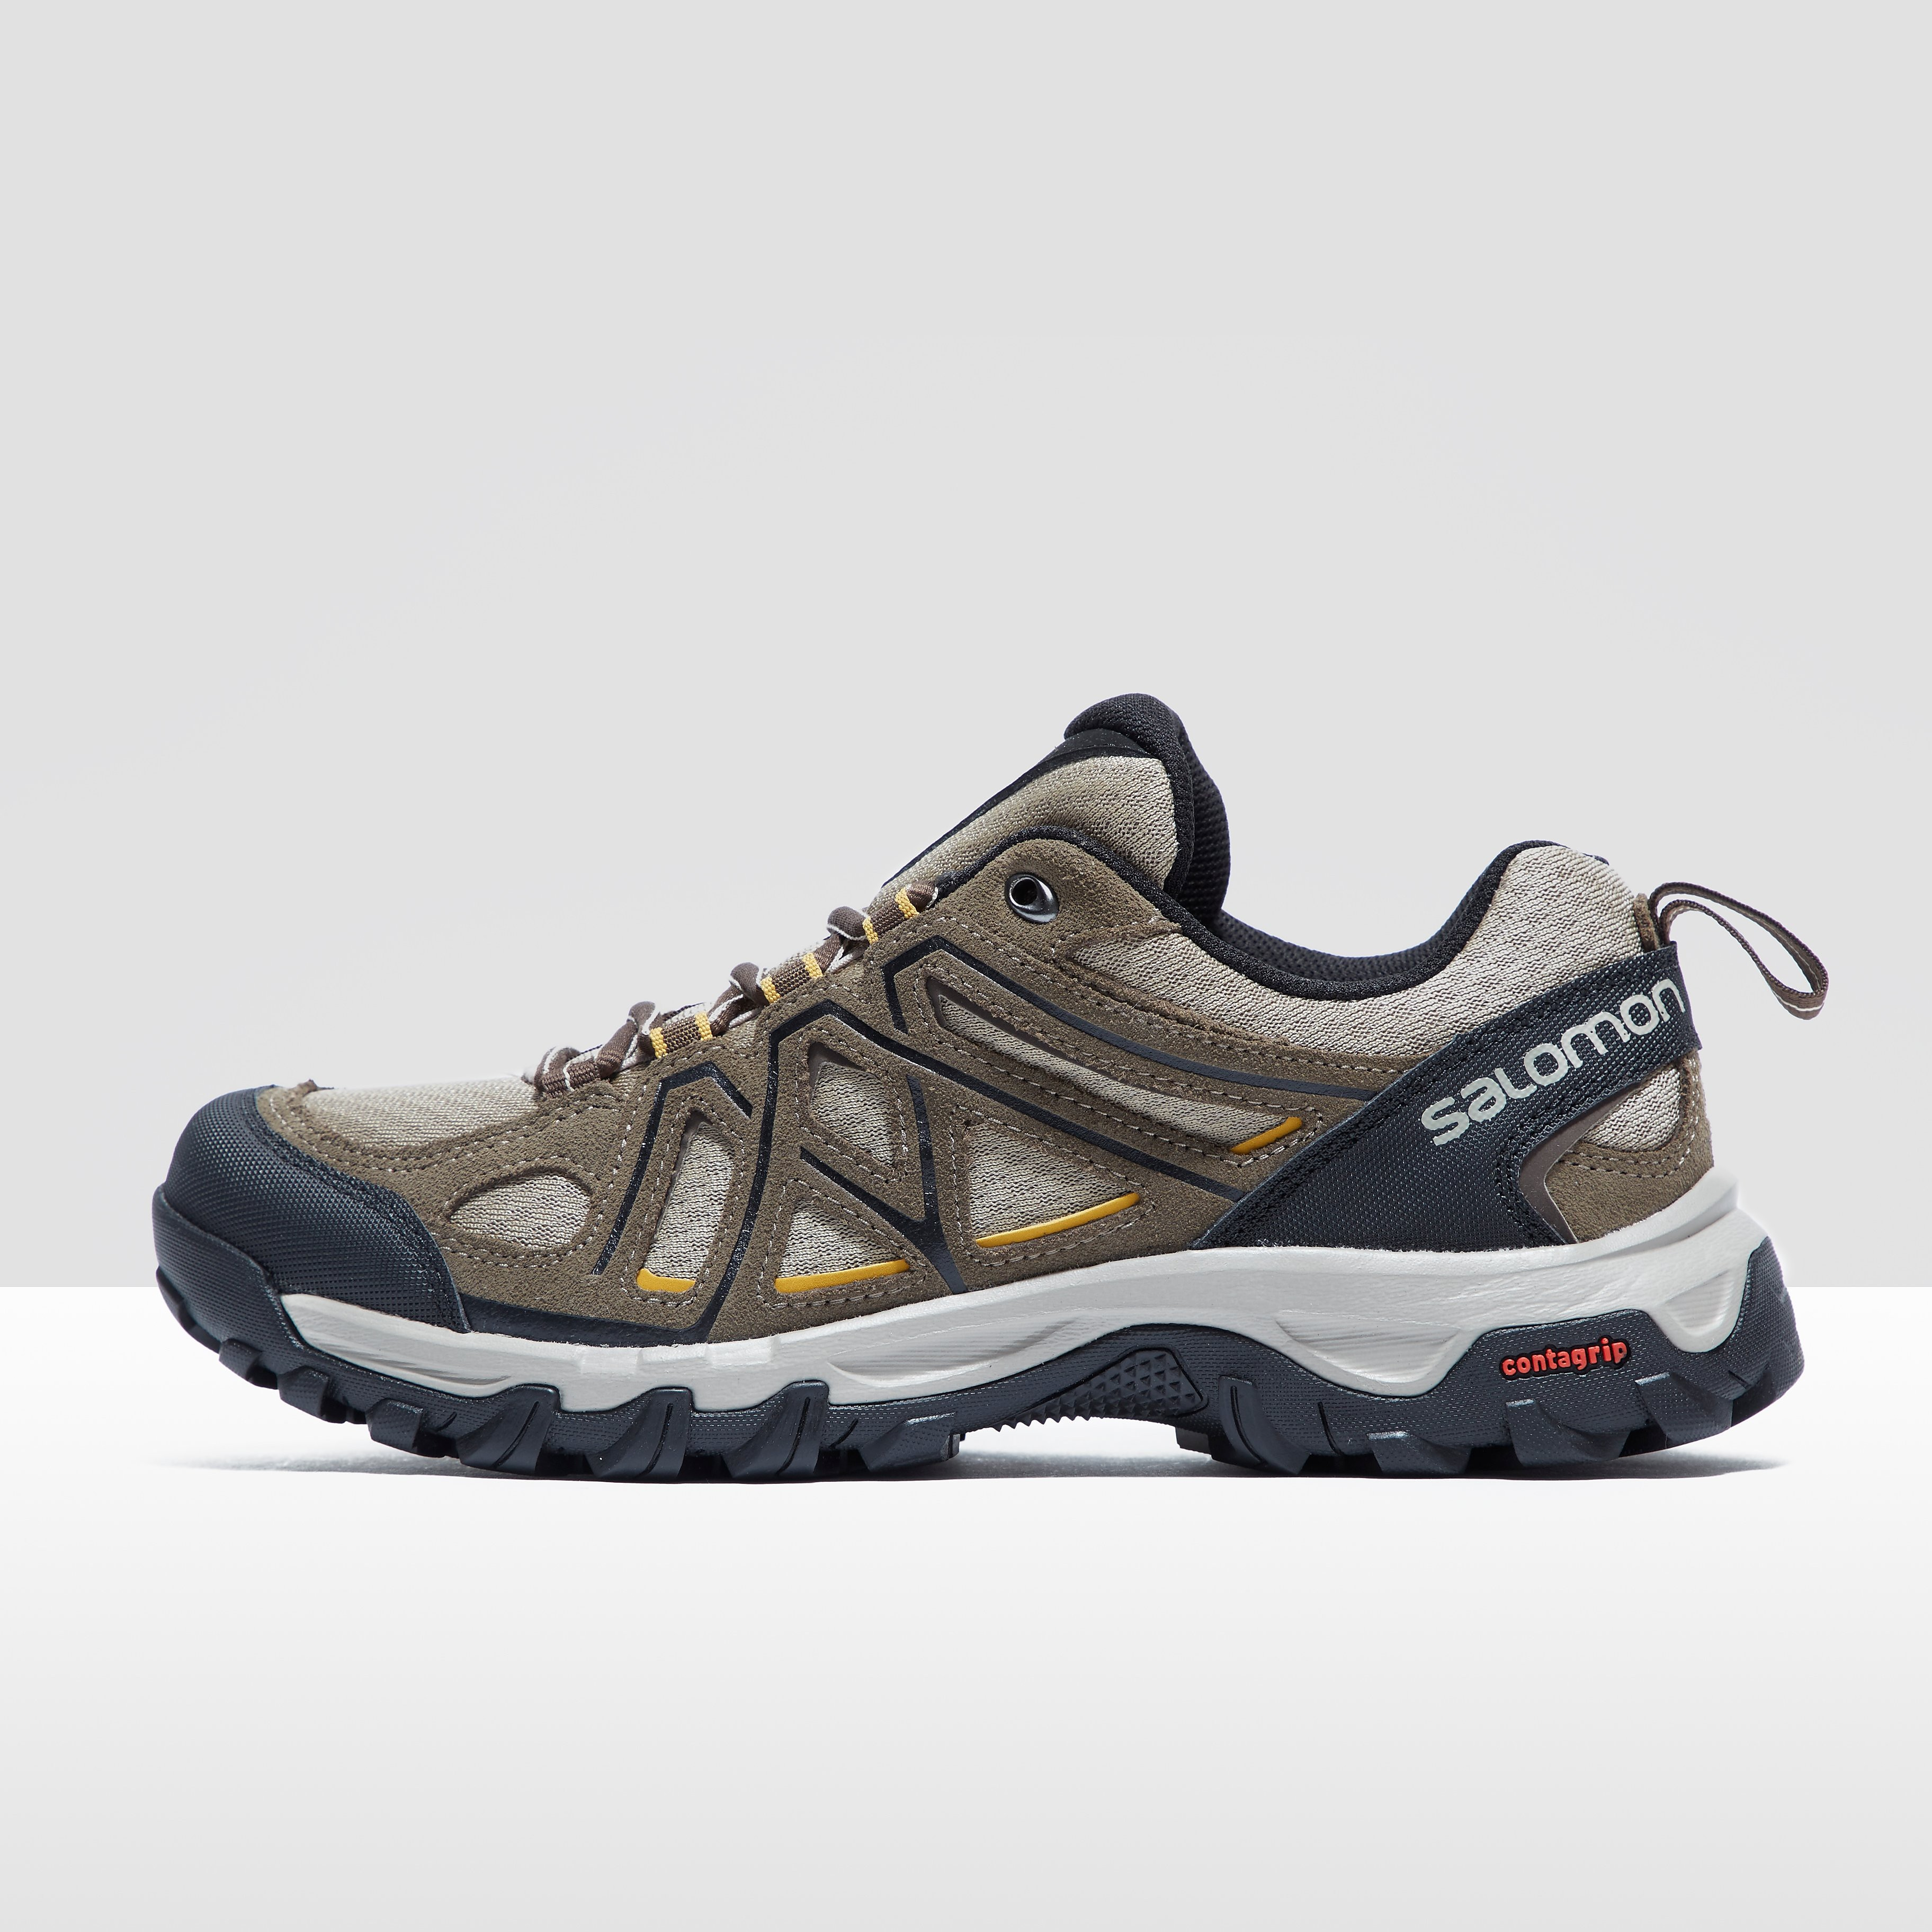 Salomon Evasion 2 Aero Men's Walking Shoes